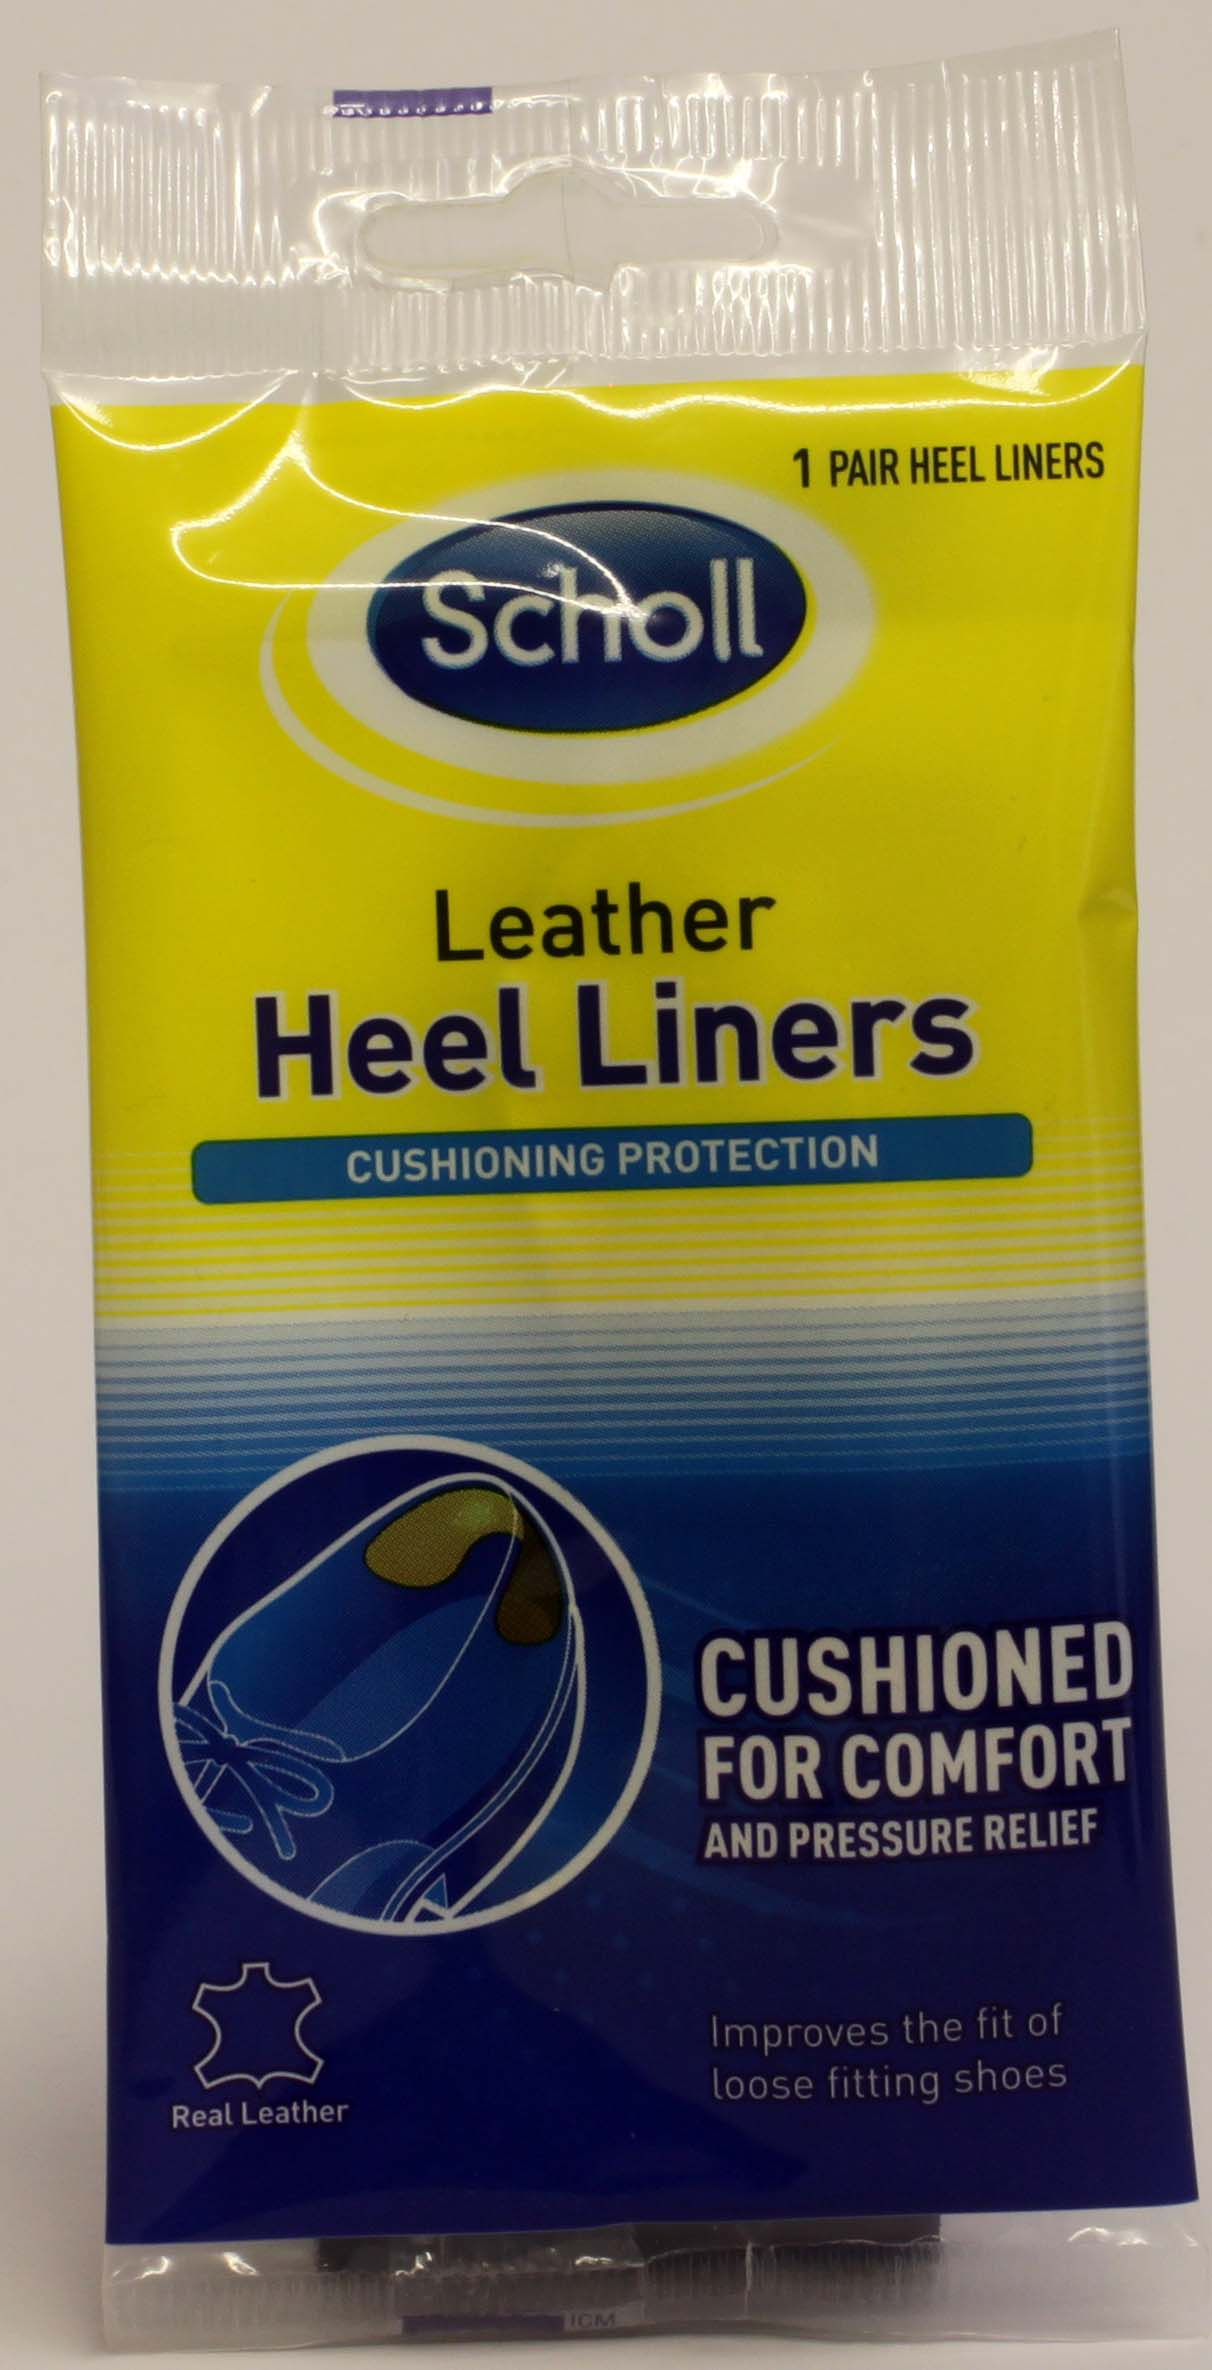 Scholl Leather Heel Liners - 1 pair